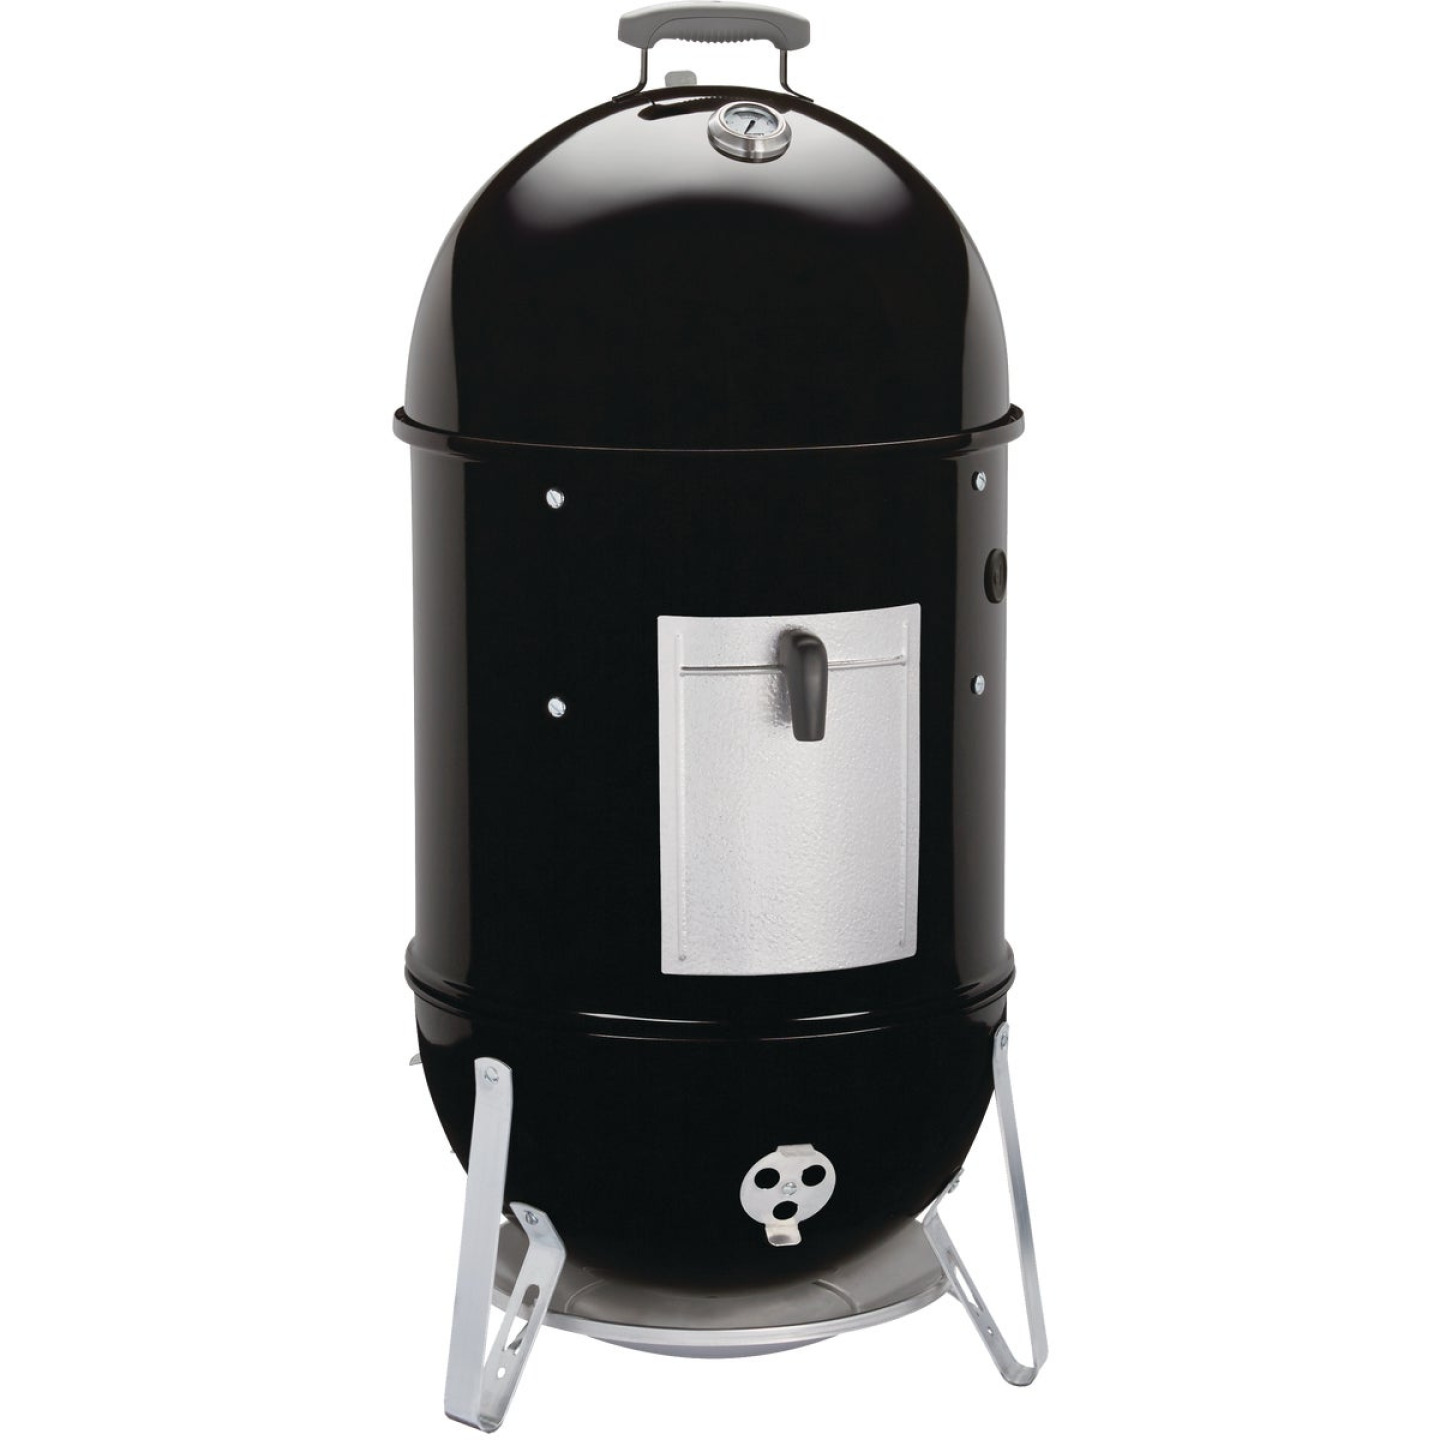 Weber Smokey Mountain Cooker 18 In. Dia. 481 Sq. In. Vertical Charcoal Smoker Image 1